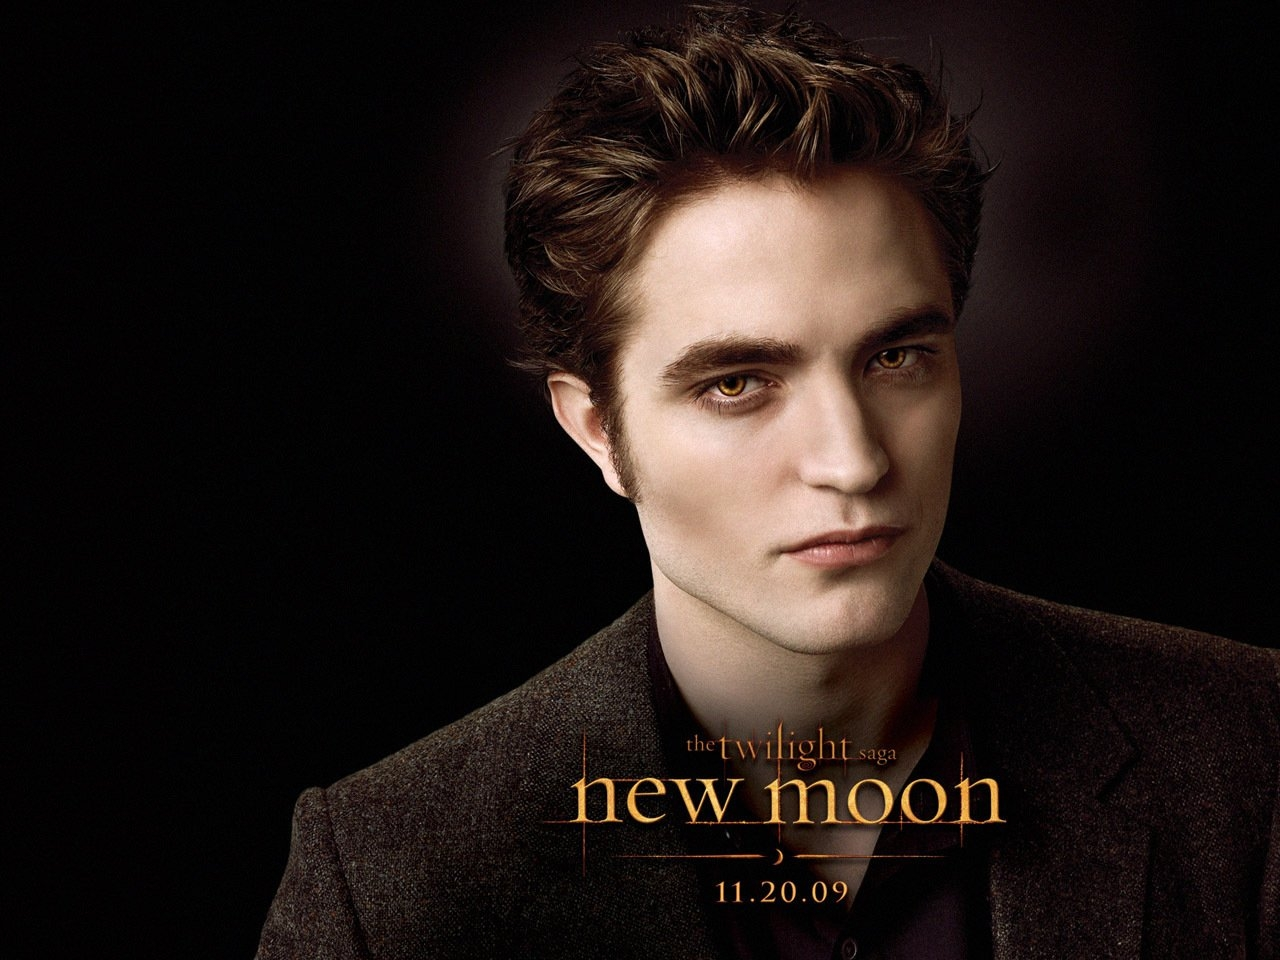 New-Moon-twilight-series-7636434-1280-960 - сумреки обои